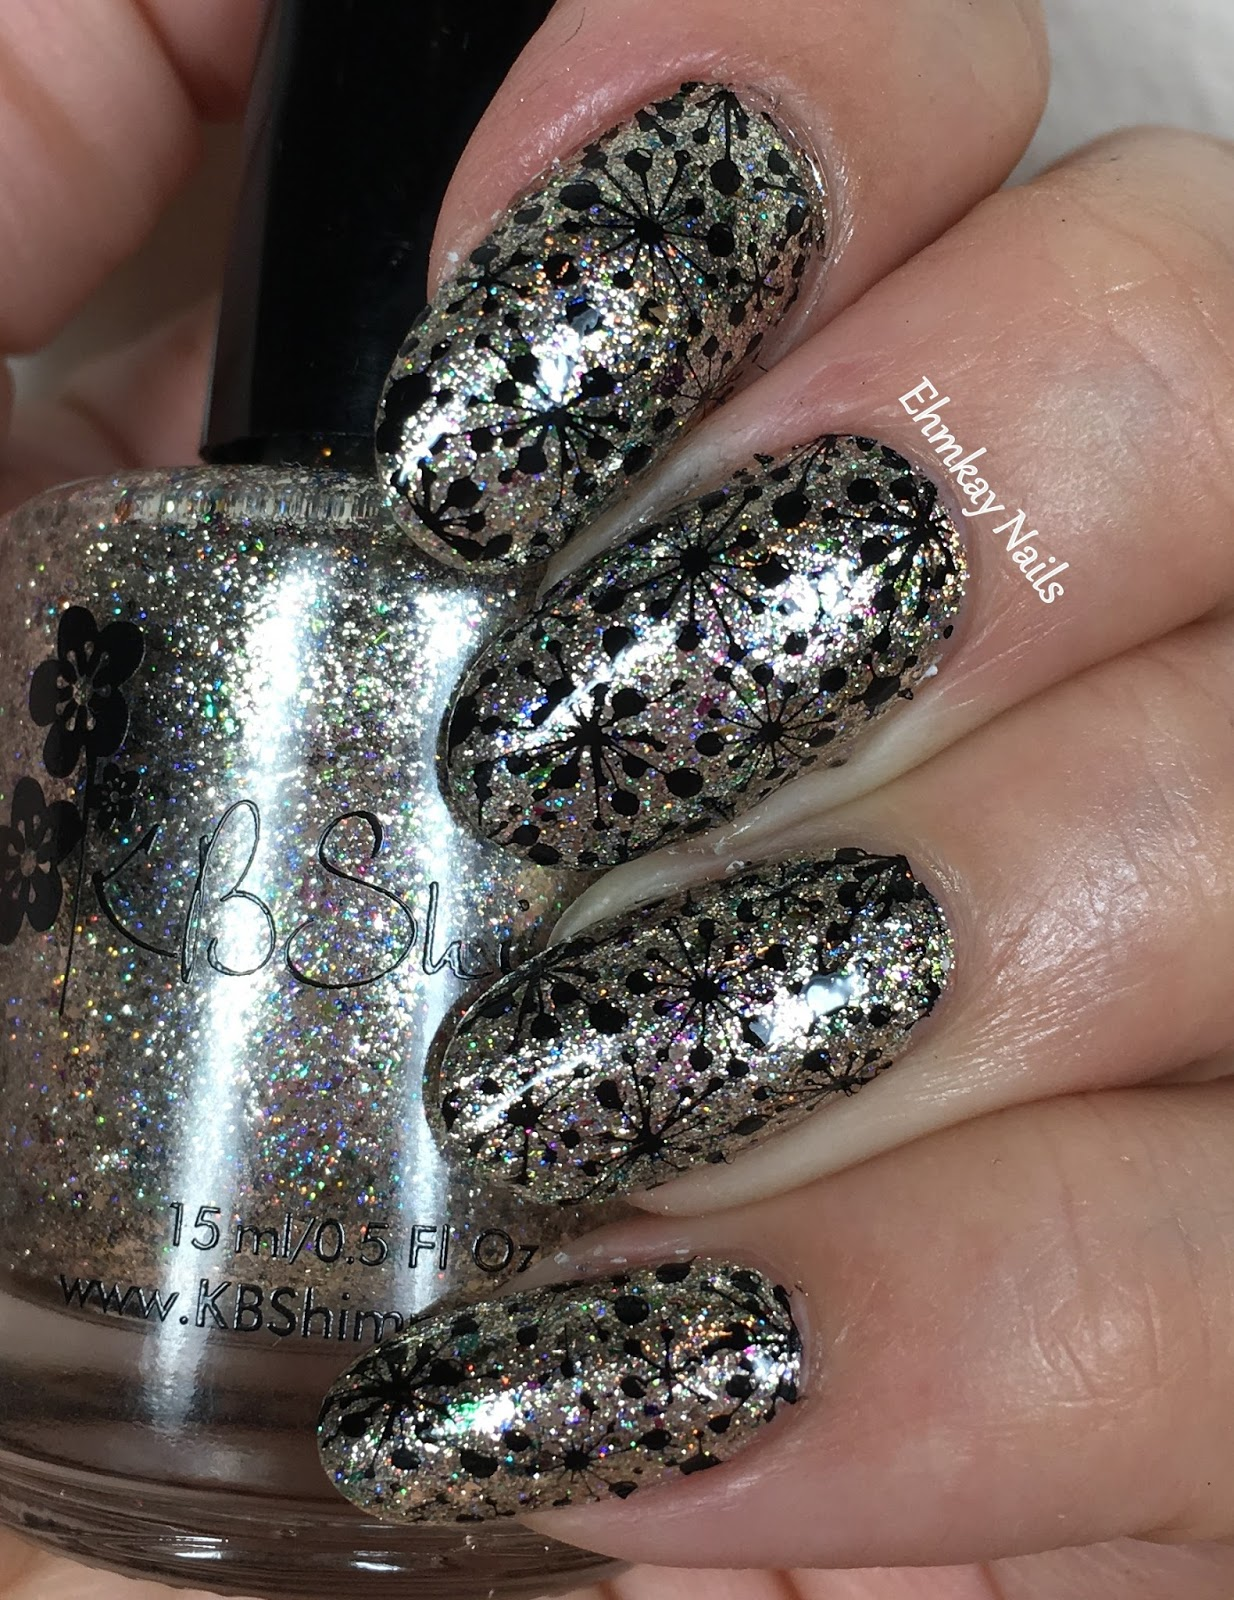 New Nail Polish Trends: Ehmkay Nails: New Year's Eve Nail Art With KBShimmer Bling